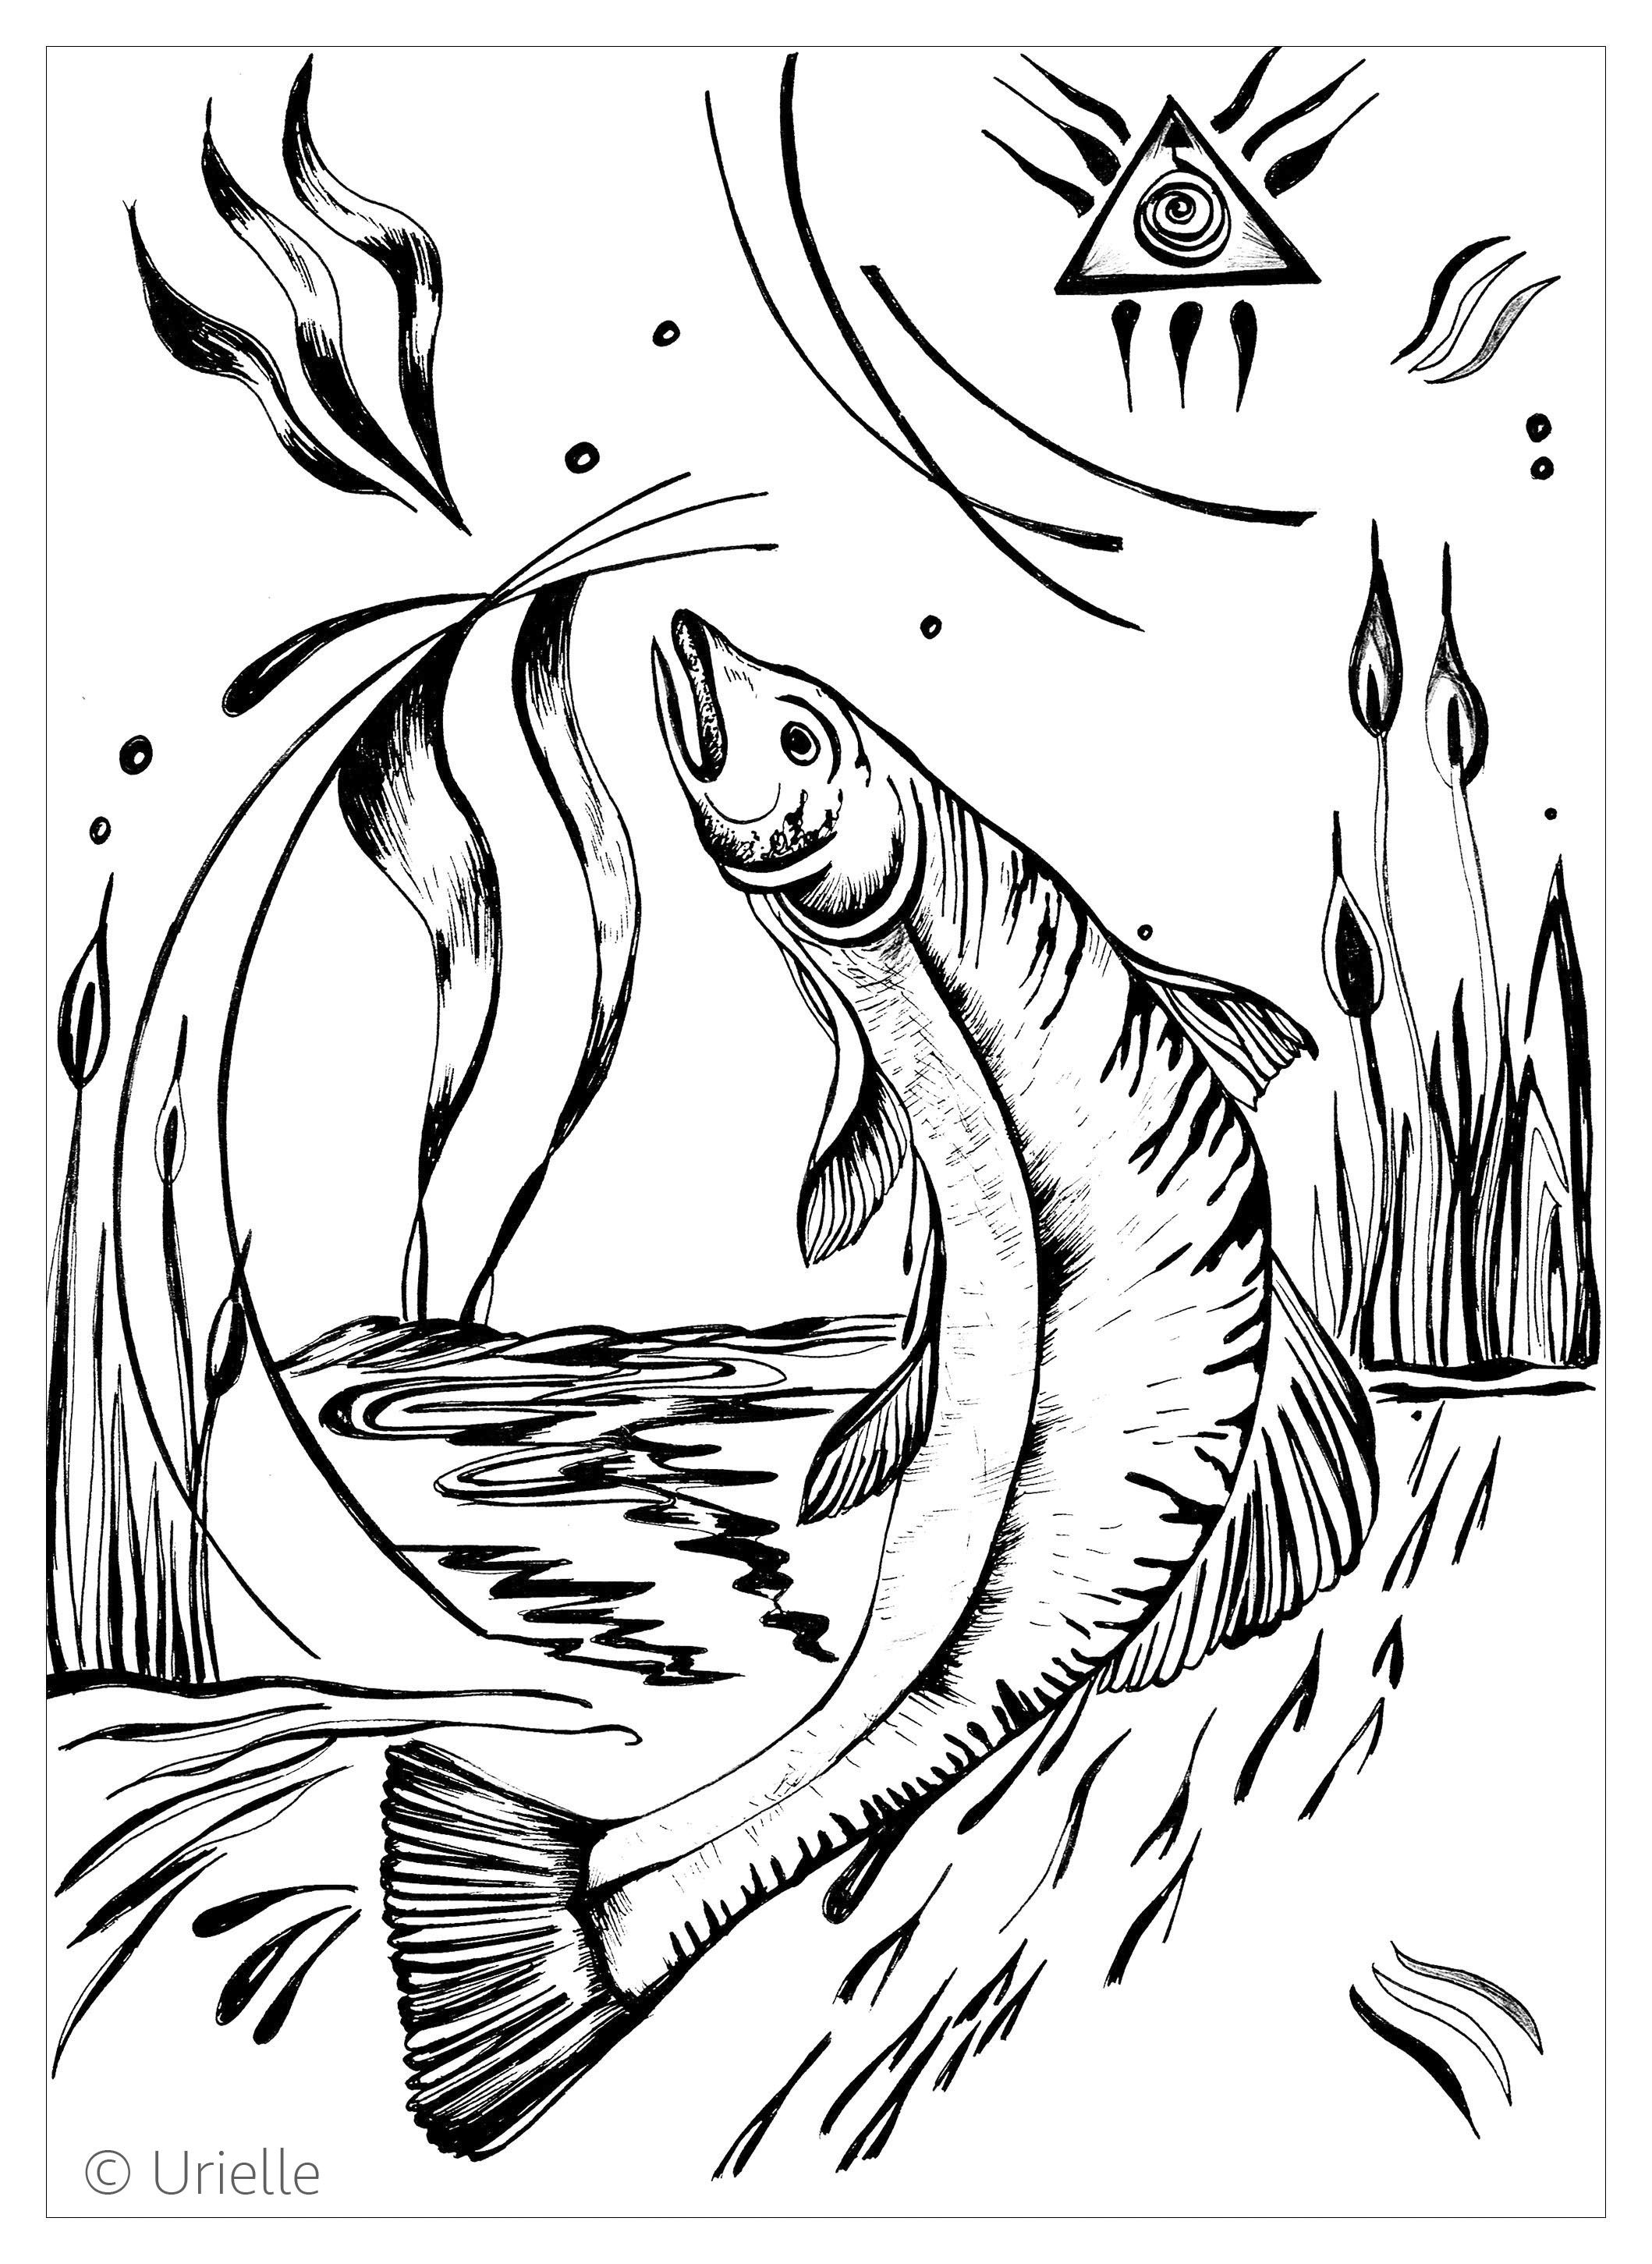 Salmon - Fishes Coloring Pages for Adults - Just Color ...